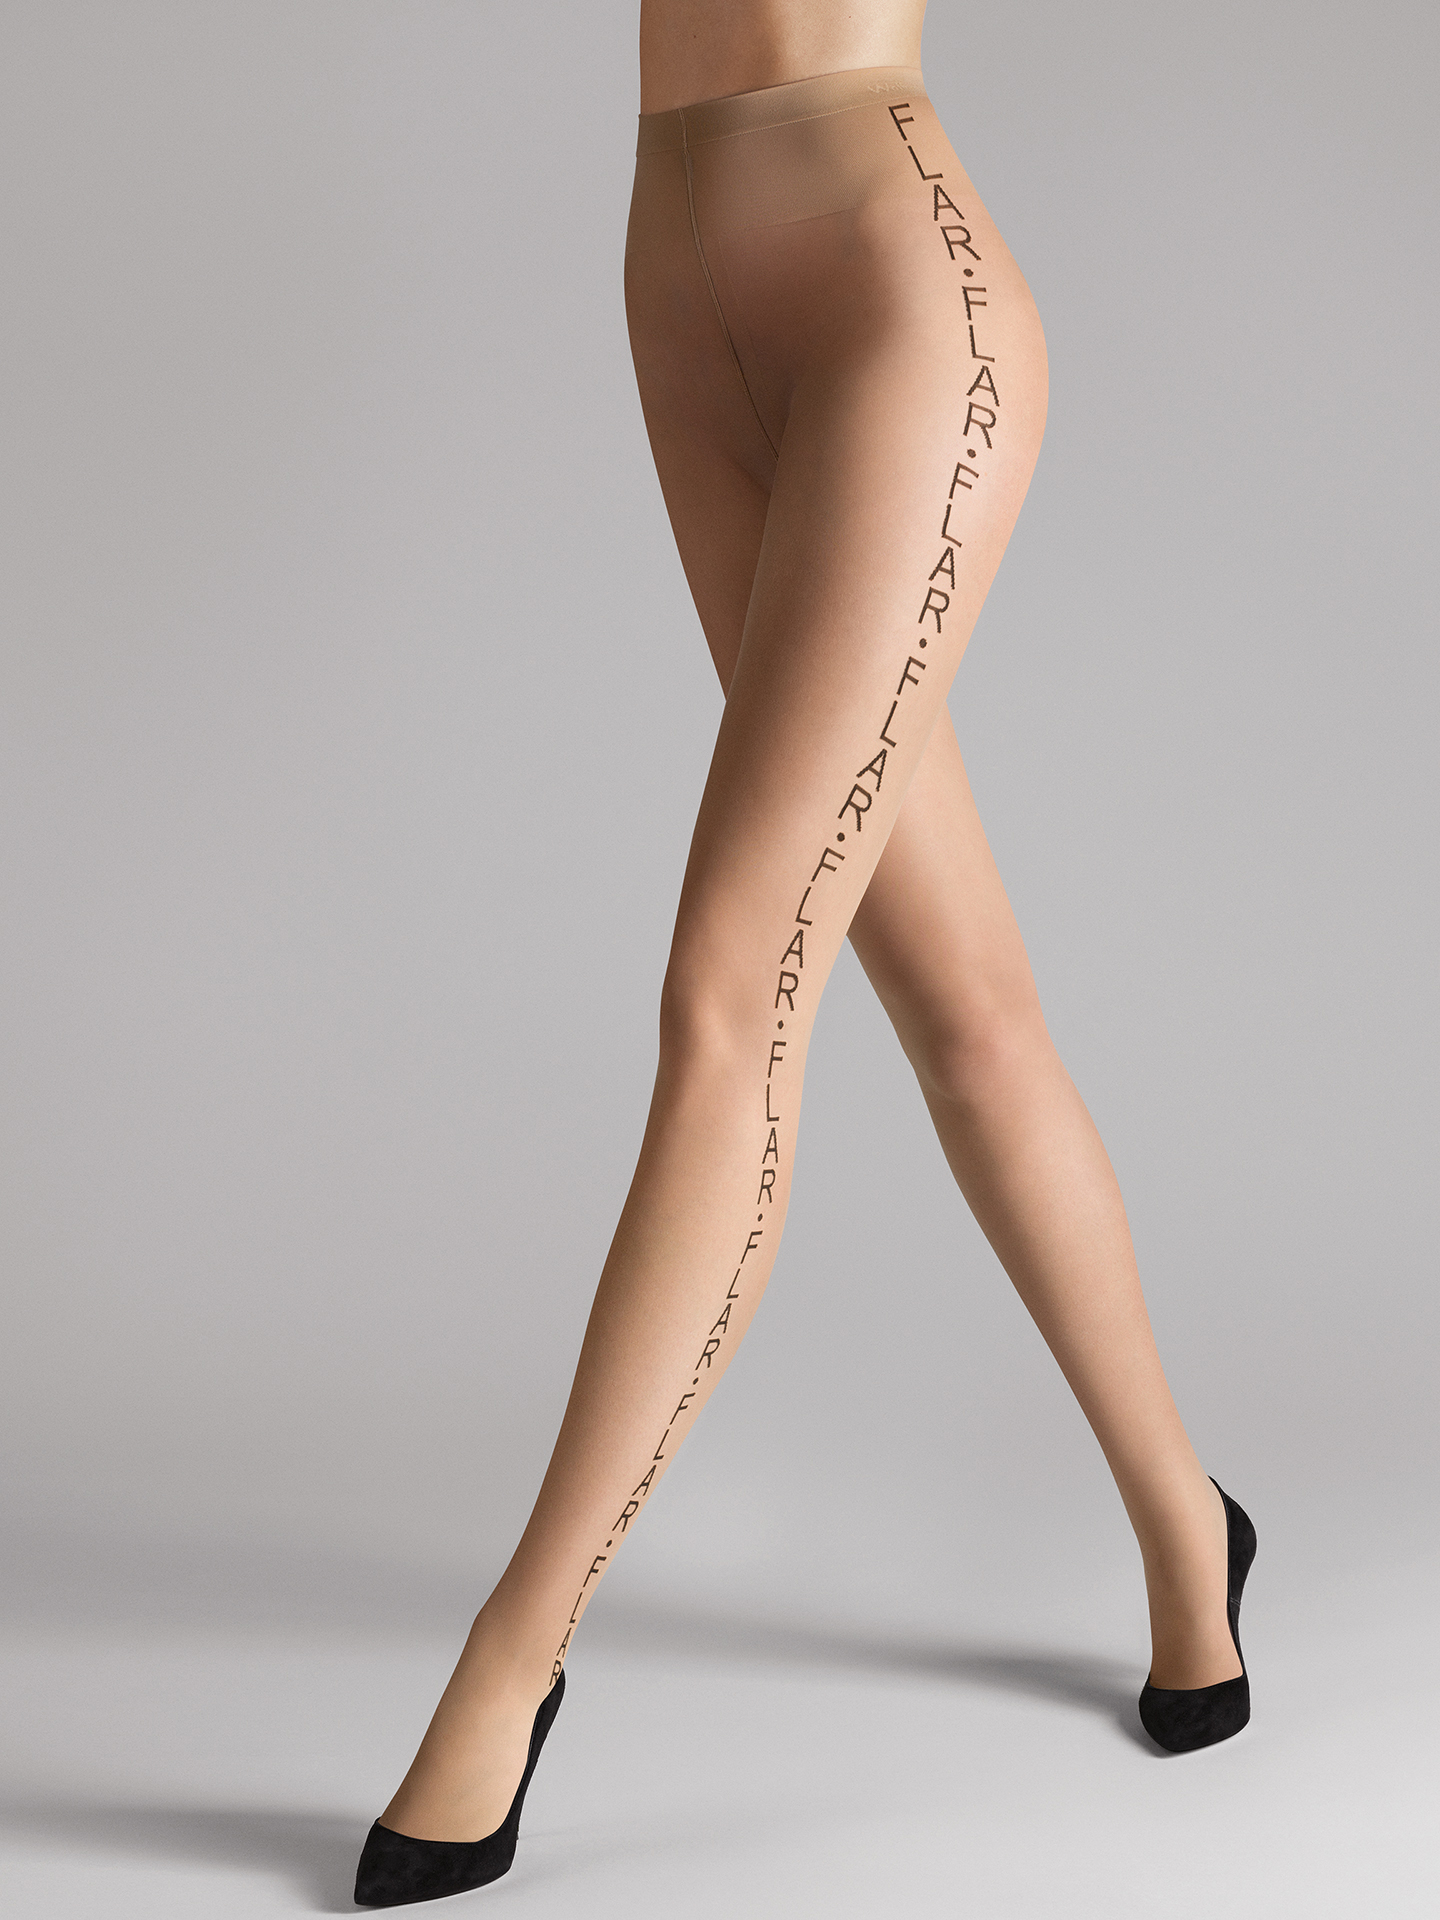 Limited Art Edition Tights - 9784 - M